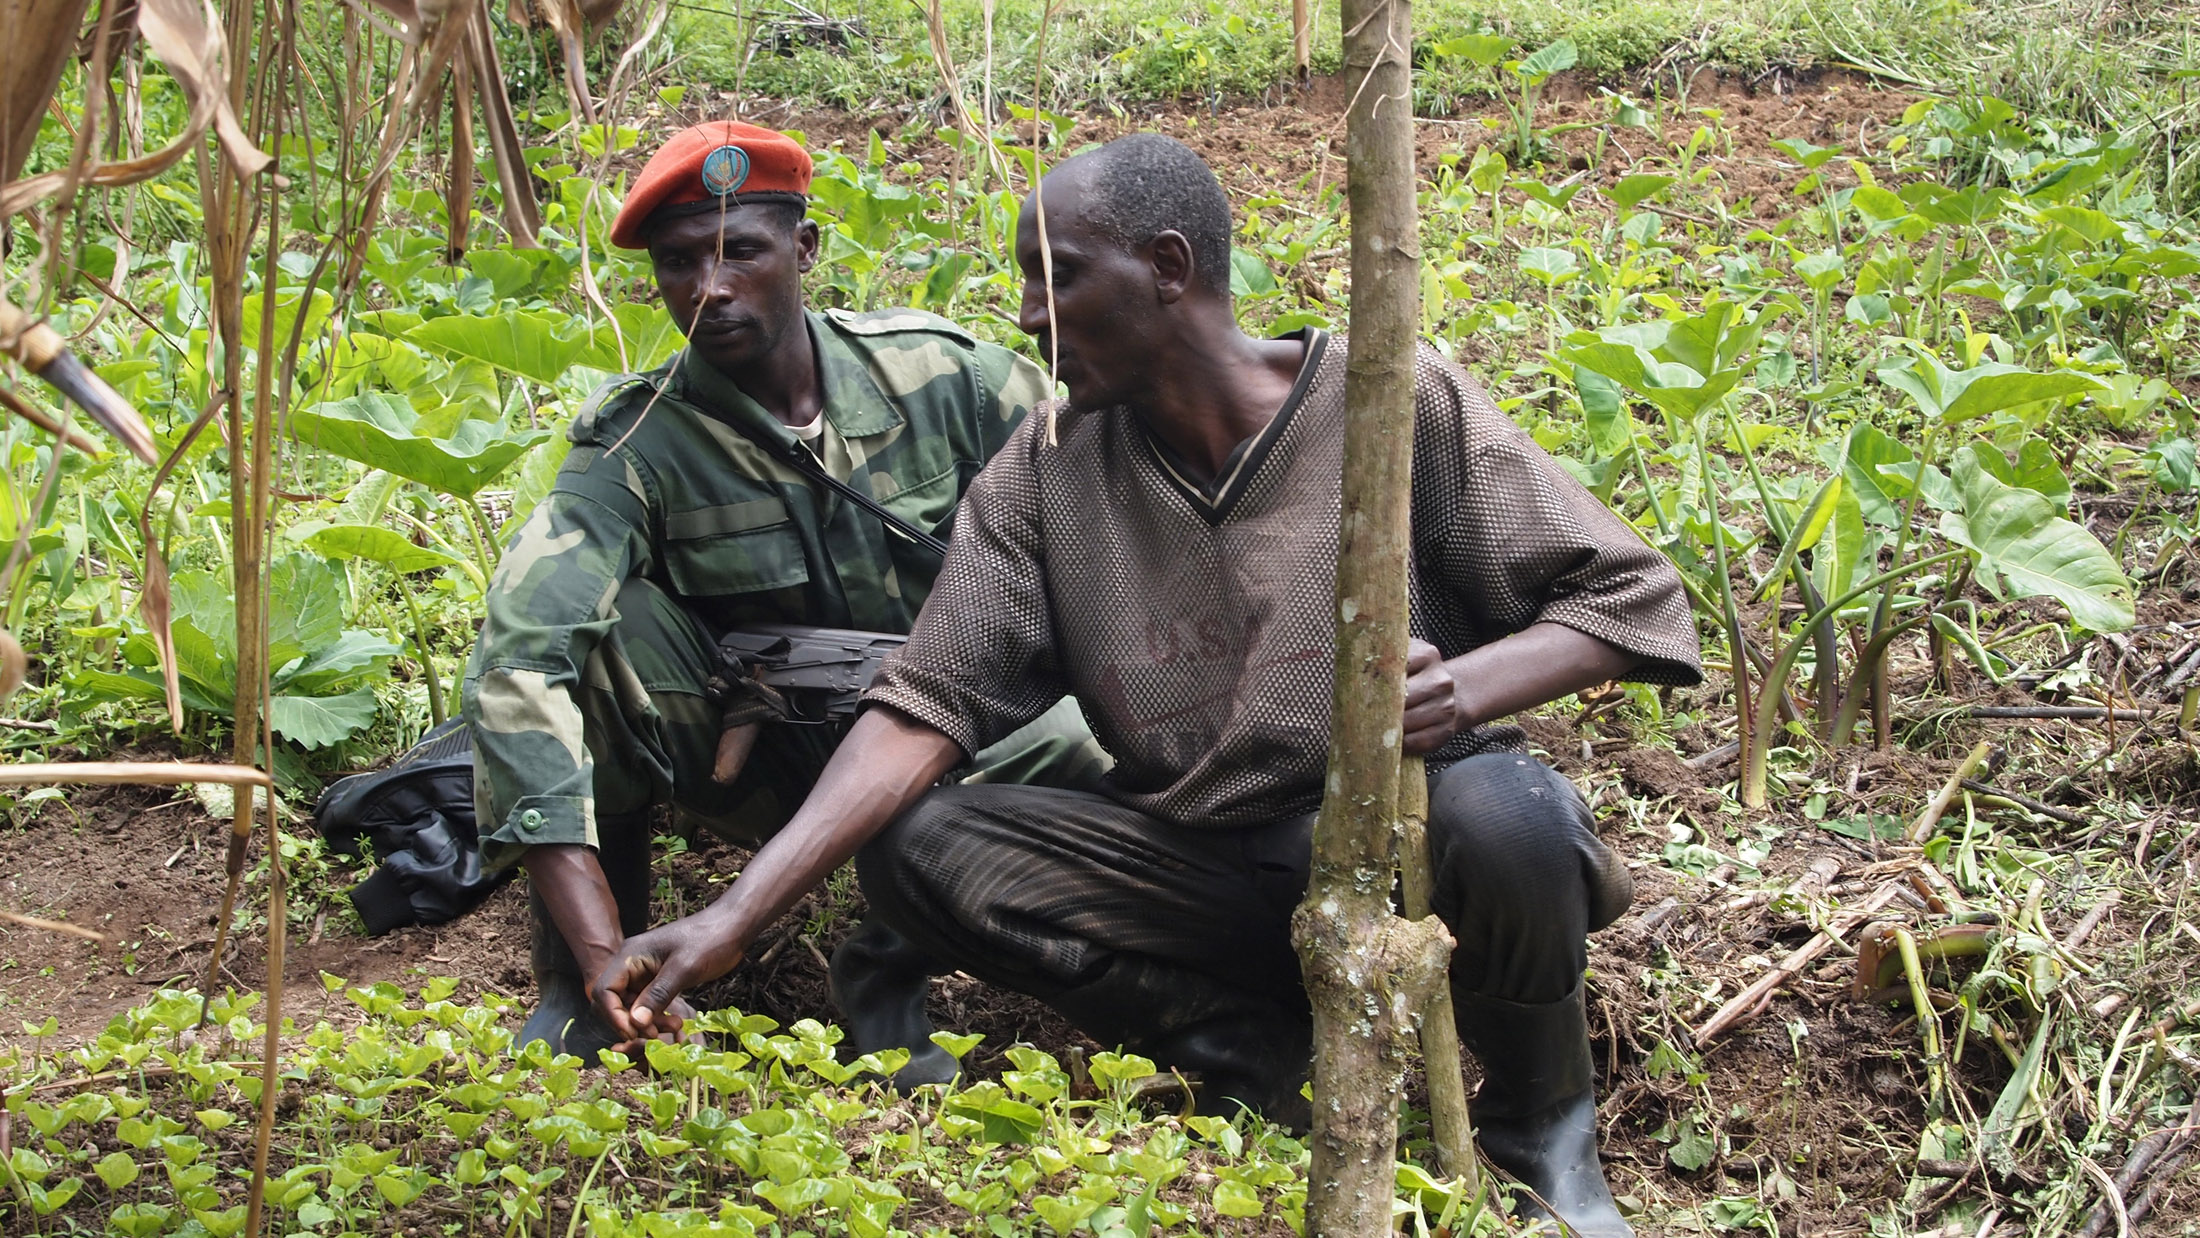 Militiaman with a farmer at a coffee plantation near Kalonge, on the borders of Masisi and Walikale territories in North Kivu